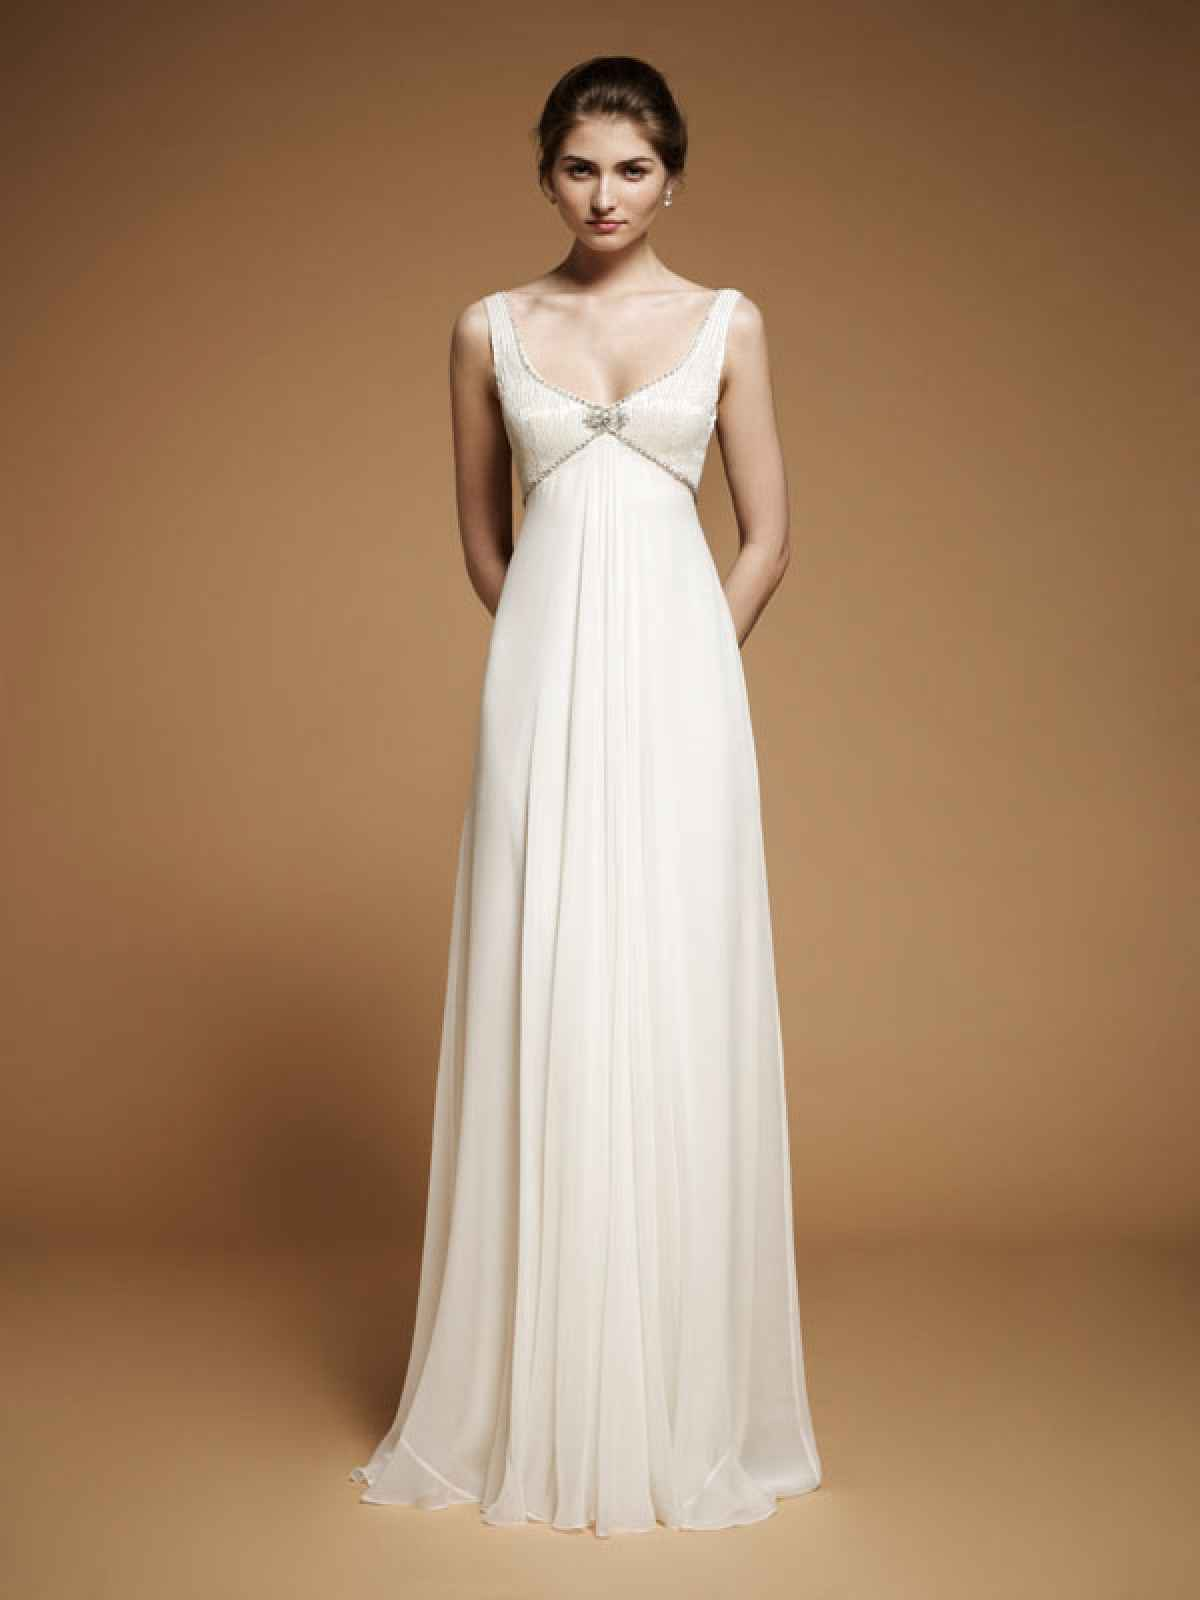 wedding dresses cold climates: Wedding Dresses For Second Marriages